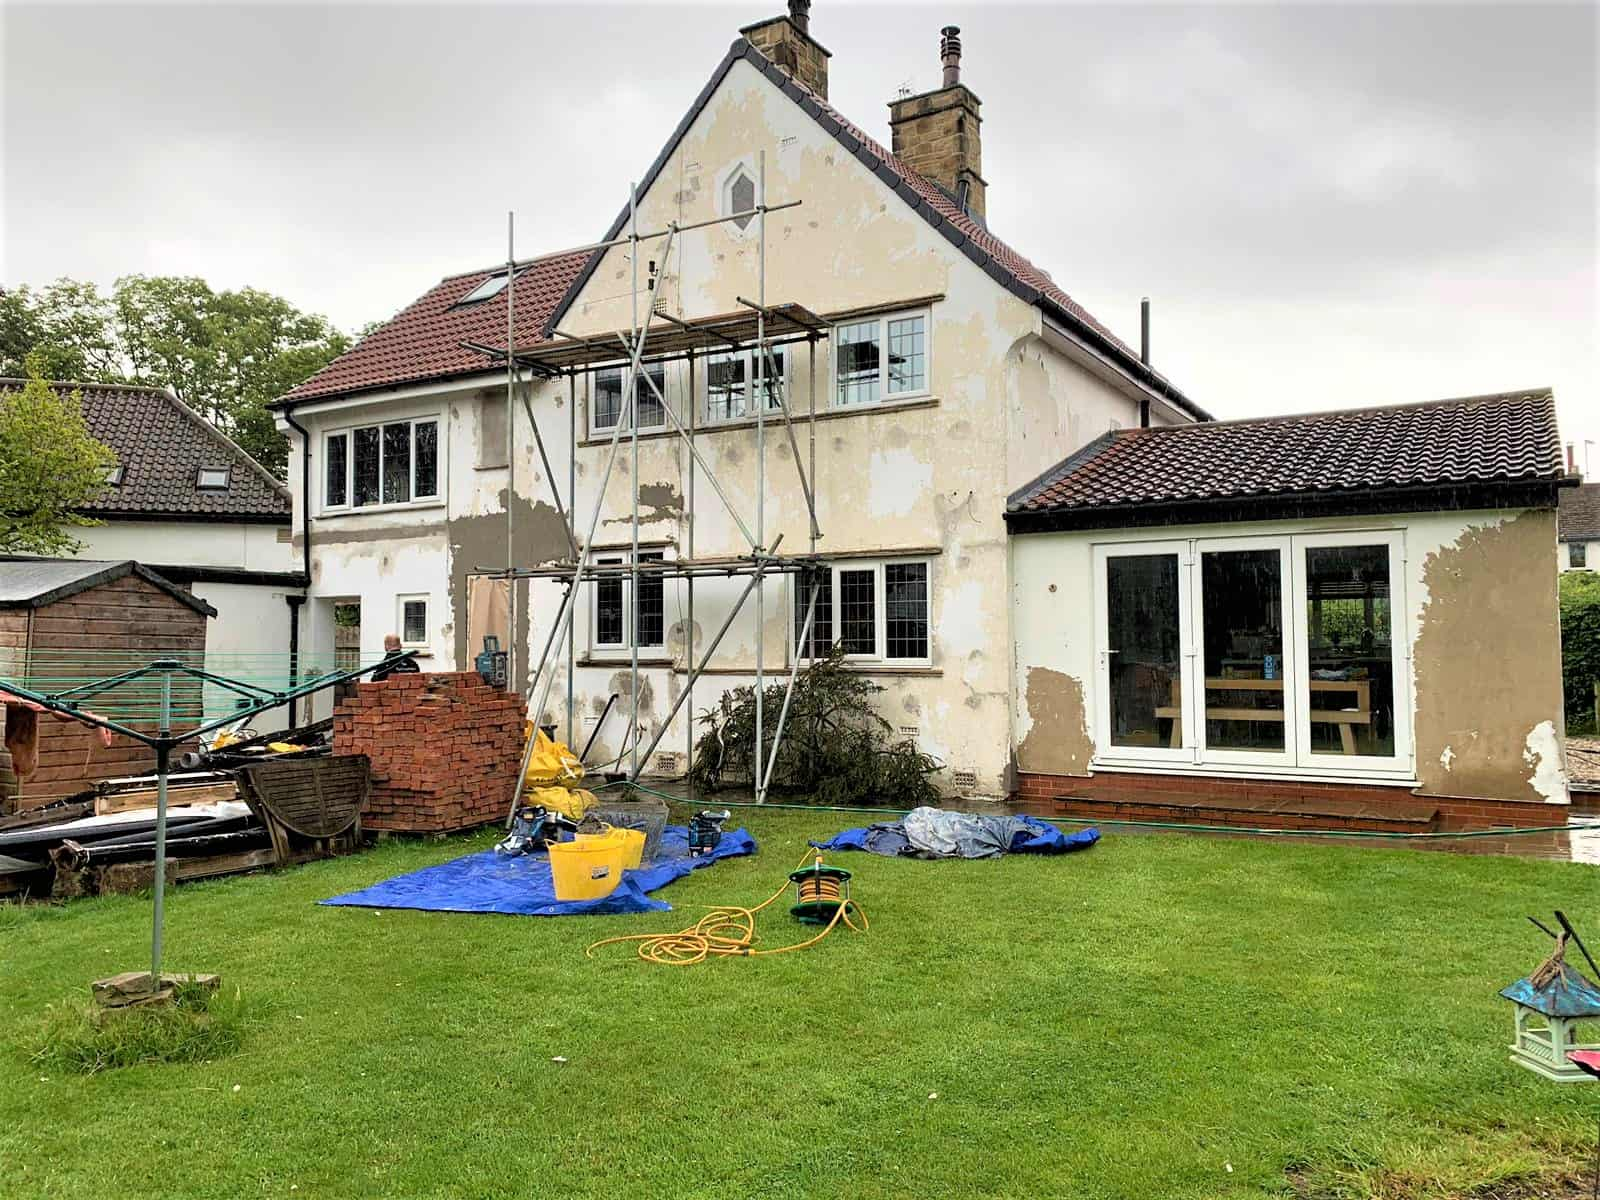 A house in Harrogate in need of TLC and exterior house painting